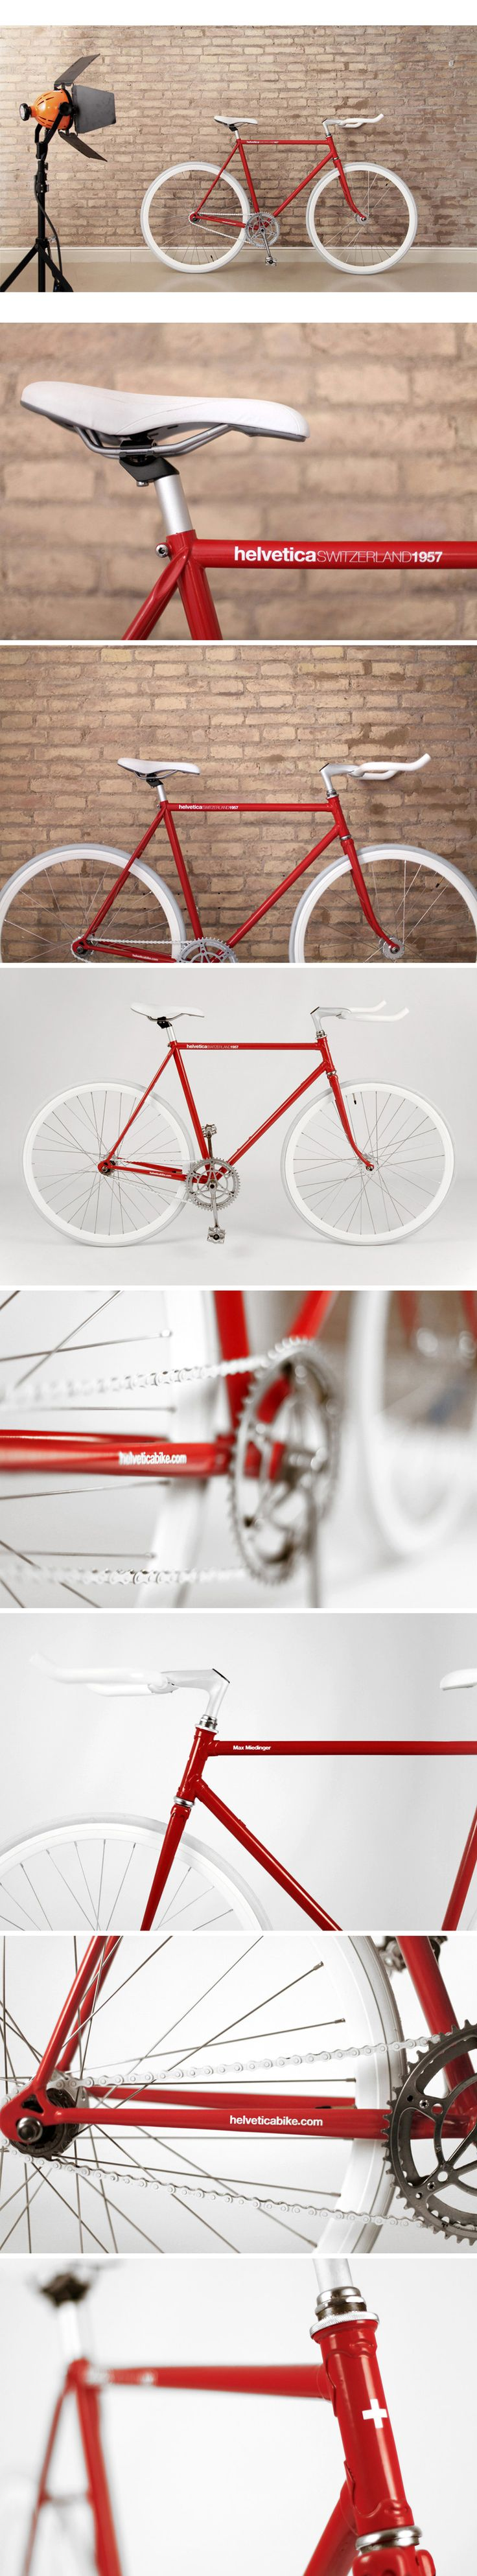 Helvetica Bike / By Borja Garcia...Love it, cannot get simple than this.